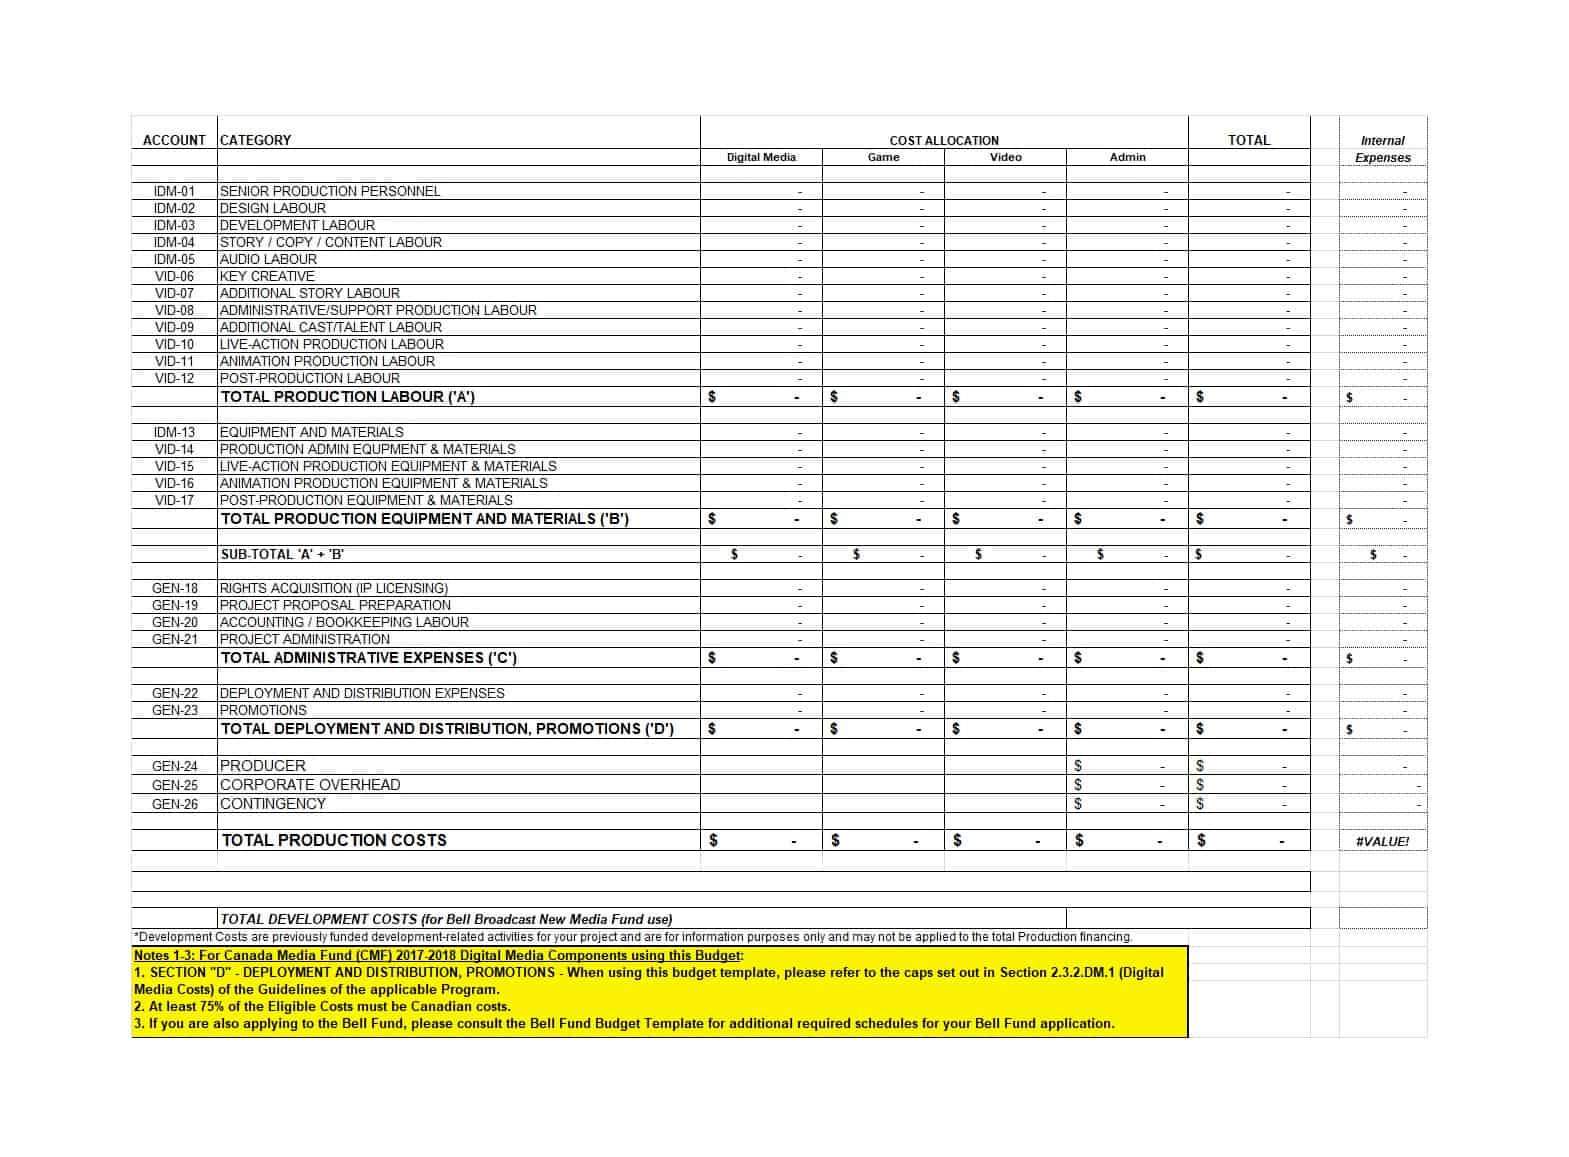 005 Production Budget Template Film Plan Awesome Templates Format